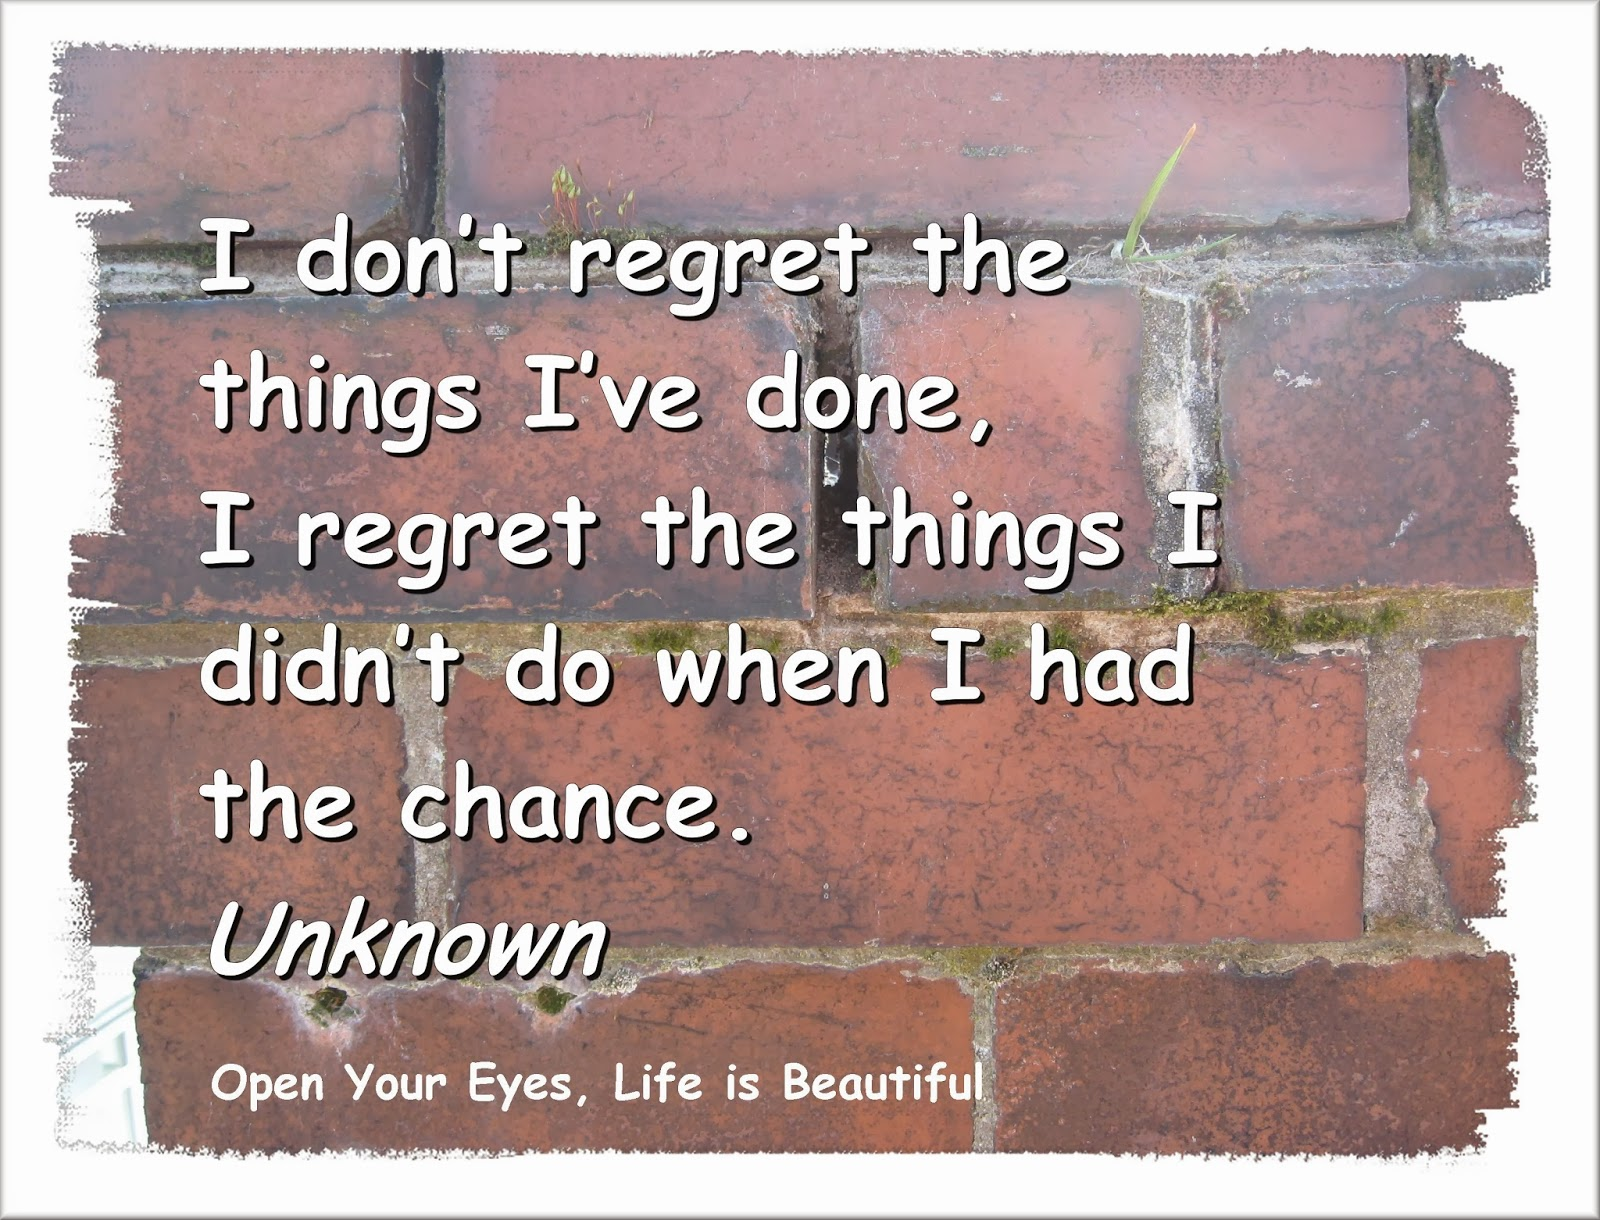 Chance I I I Have Done I Do I Had Didnt Dont Regret Regret Things Wen Things